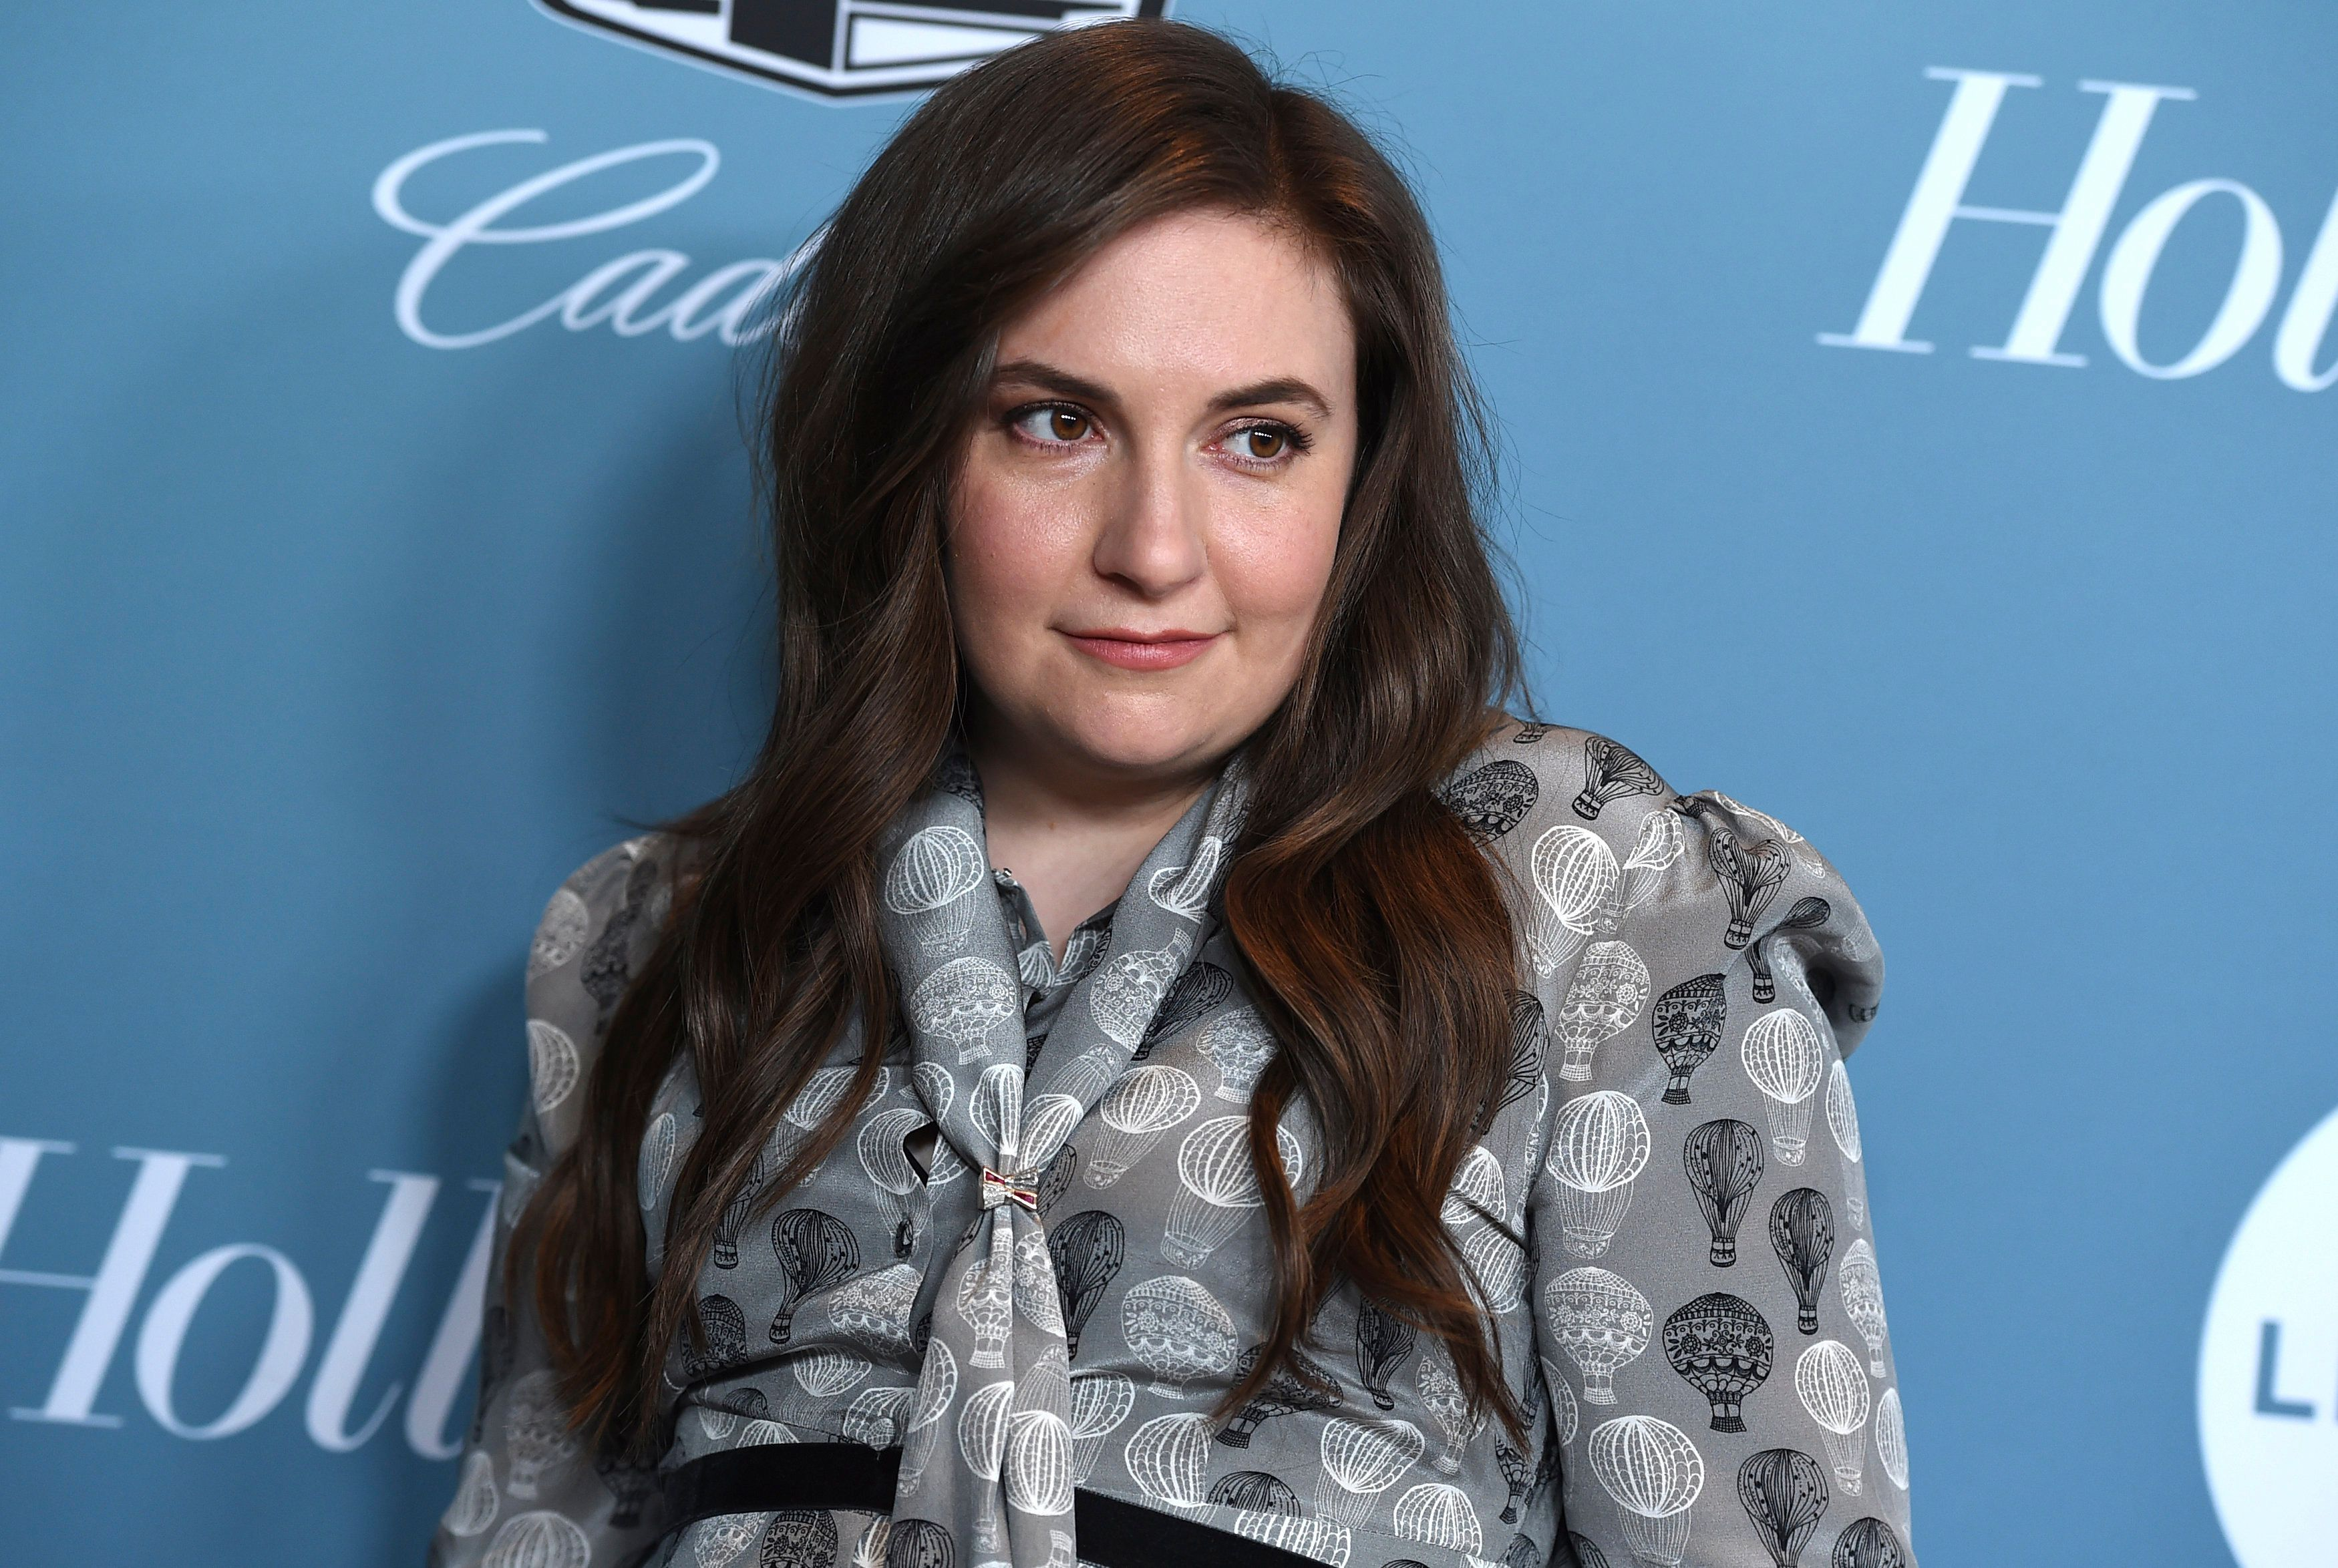 Opinion | Lena Dunham Cannot Speak For All Women With Chronic